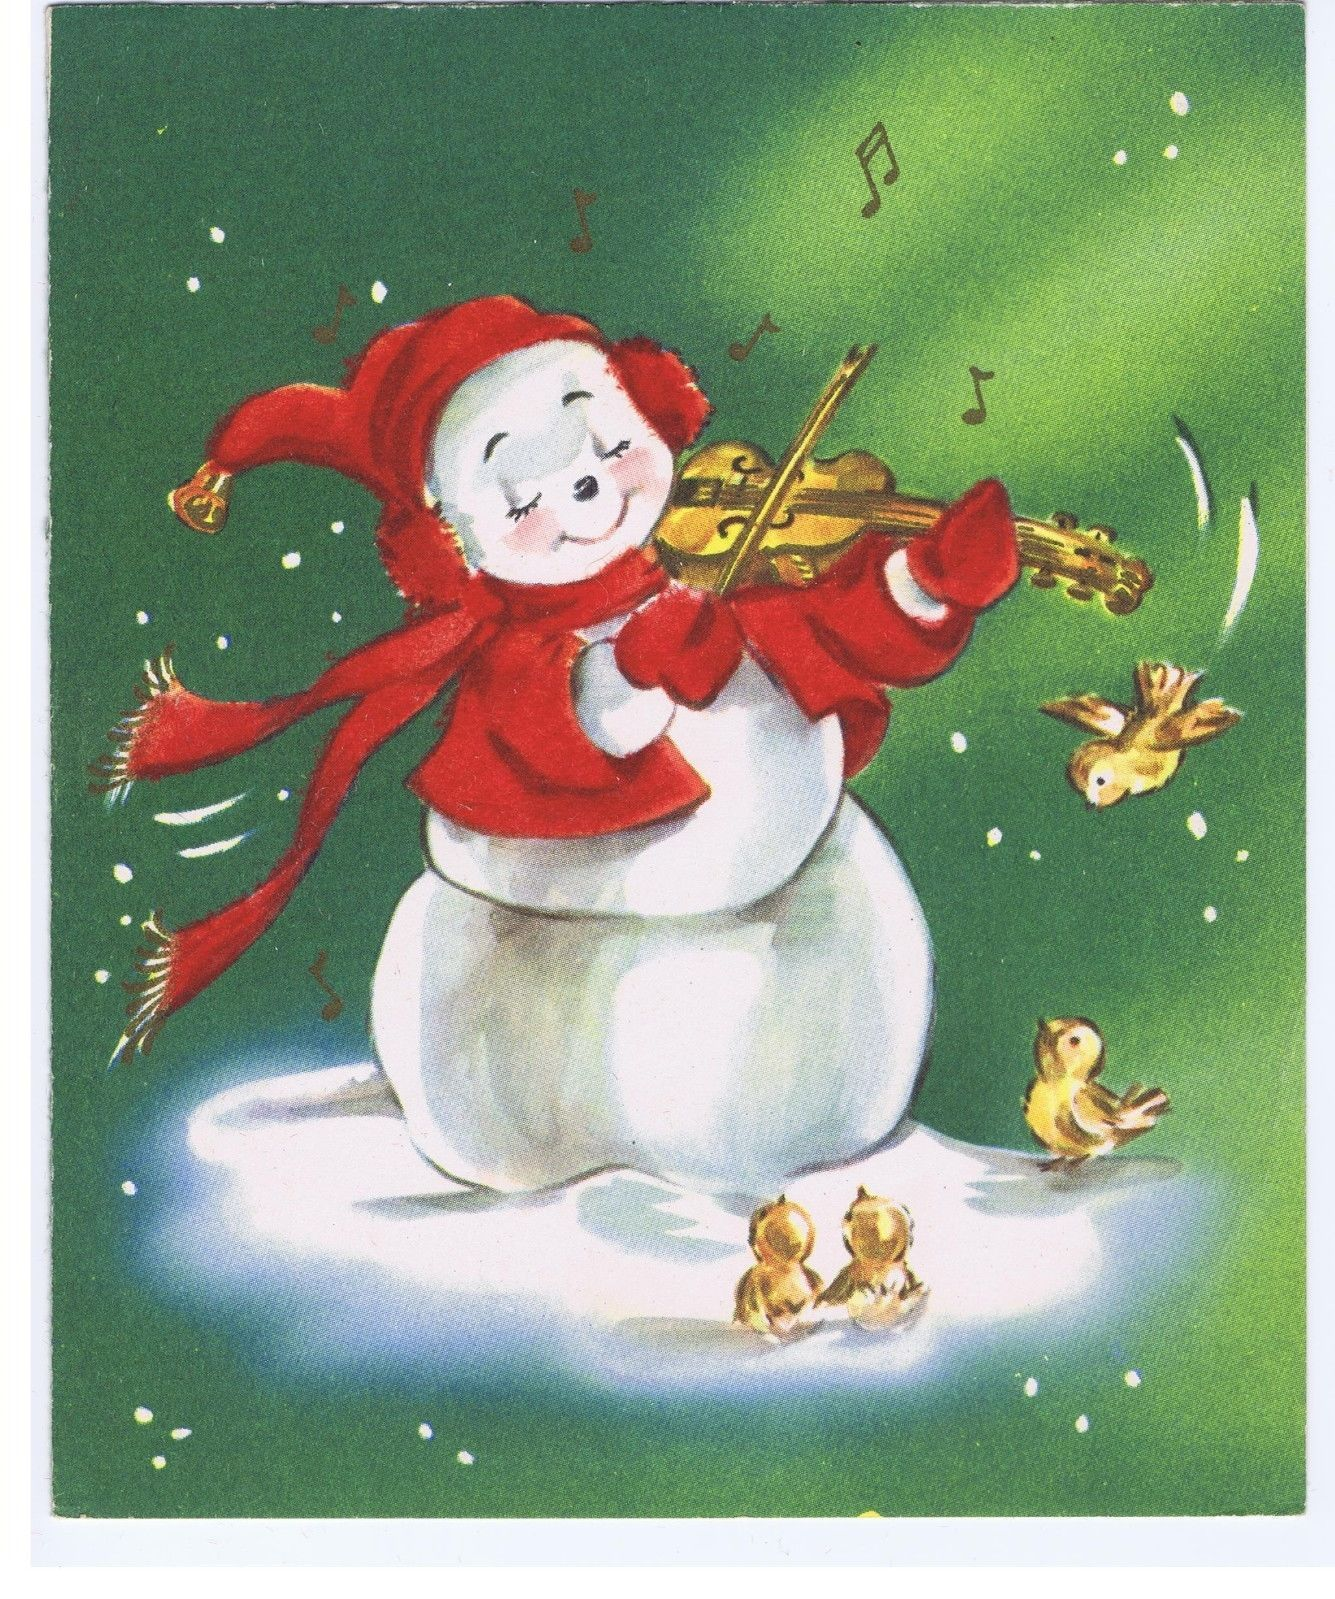 Christmas clipart playing violin clipart stock Flocked Anthropomorphic Snowman Playing Violin Birds Vintage ... clipart stock